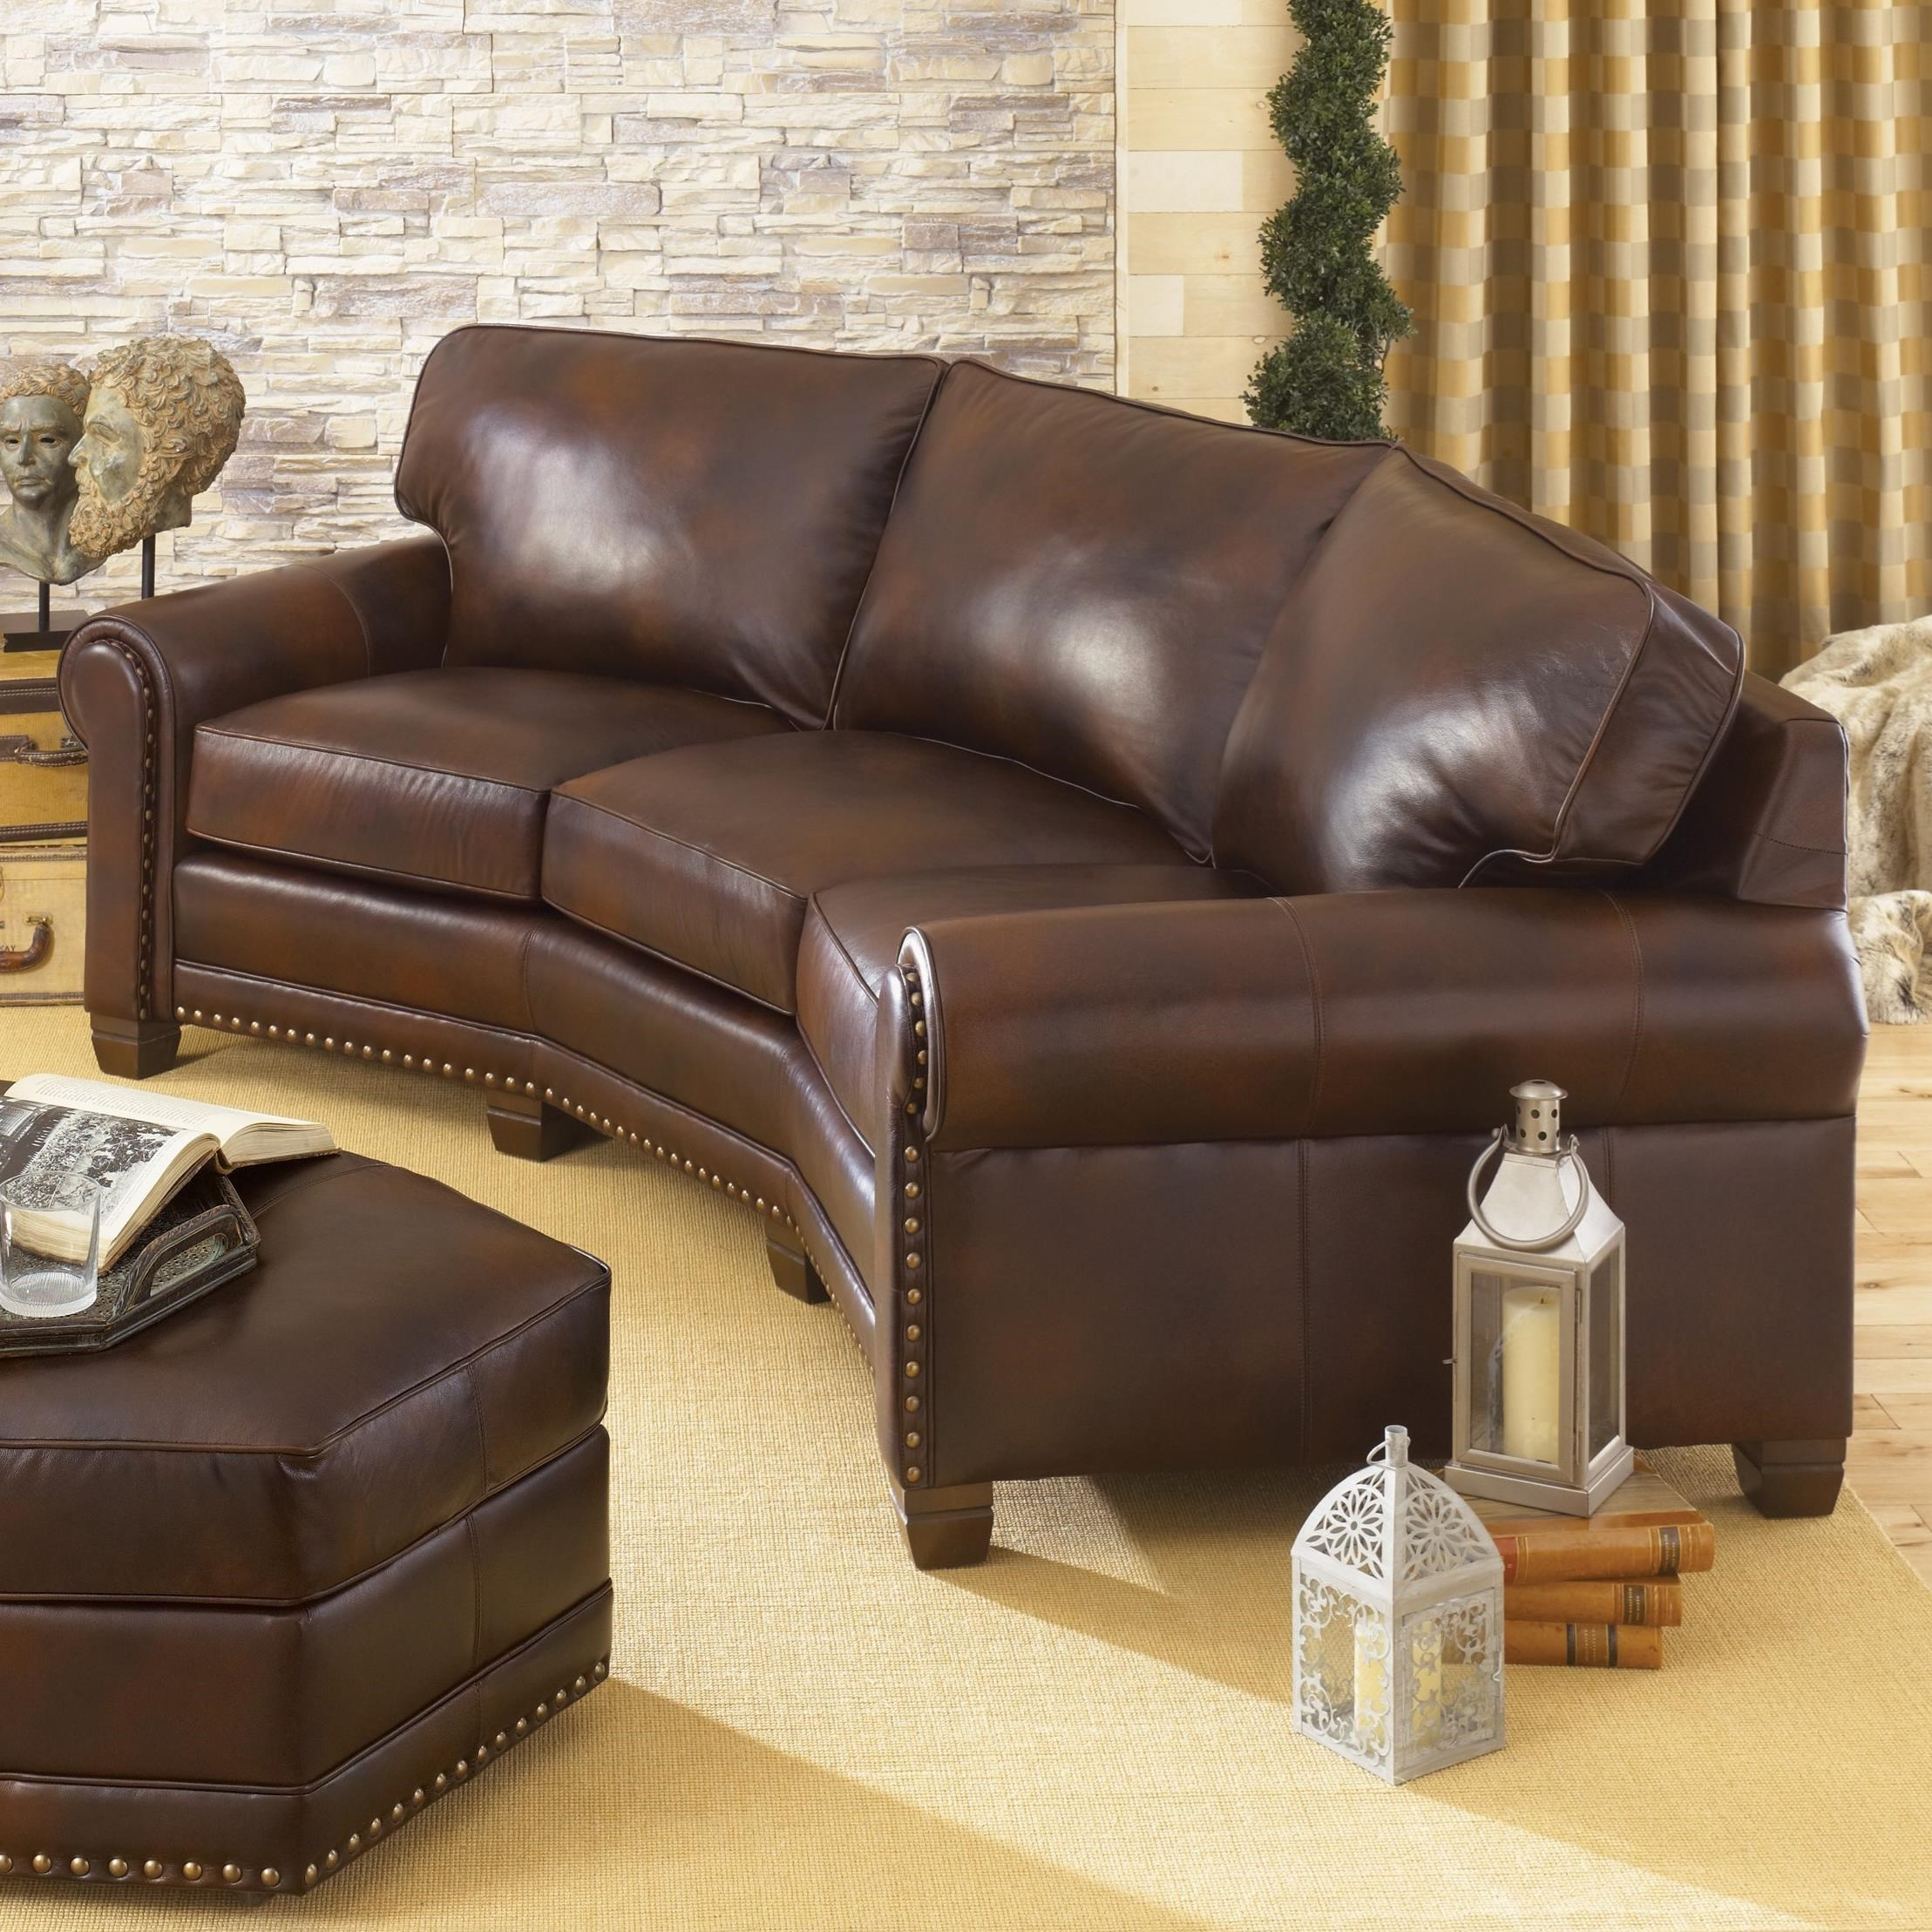 Smith brothers 393 393l 12 traditional conversation sofa for Conversation sofa